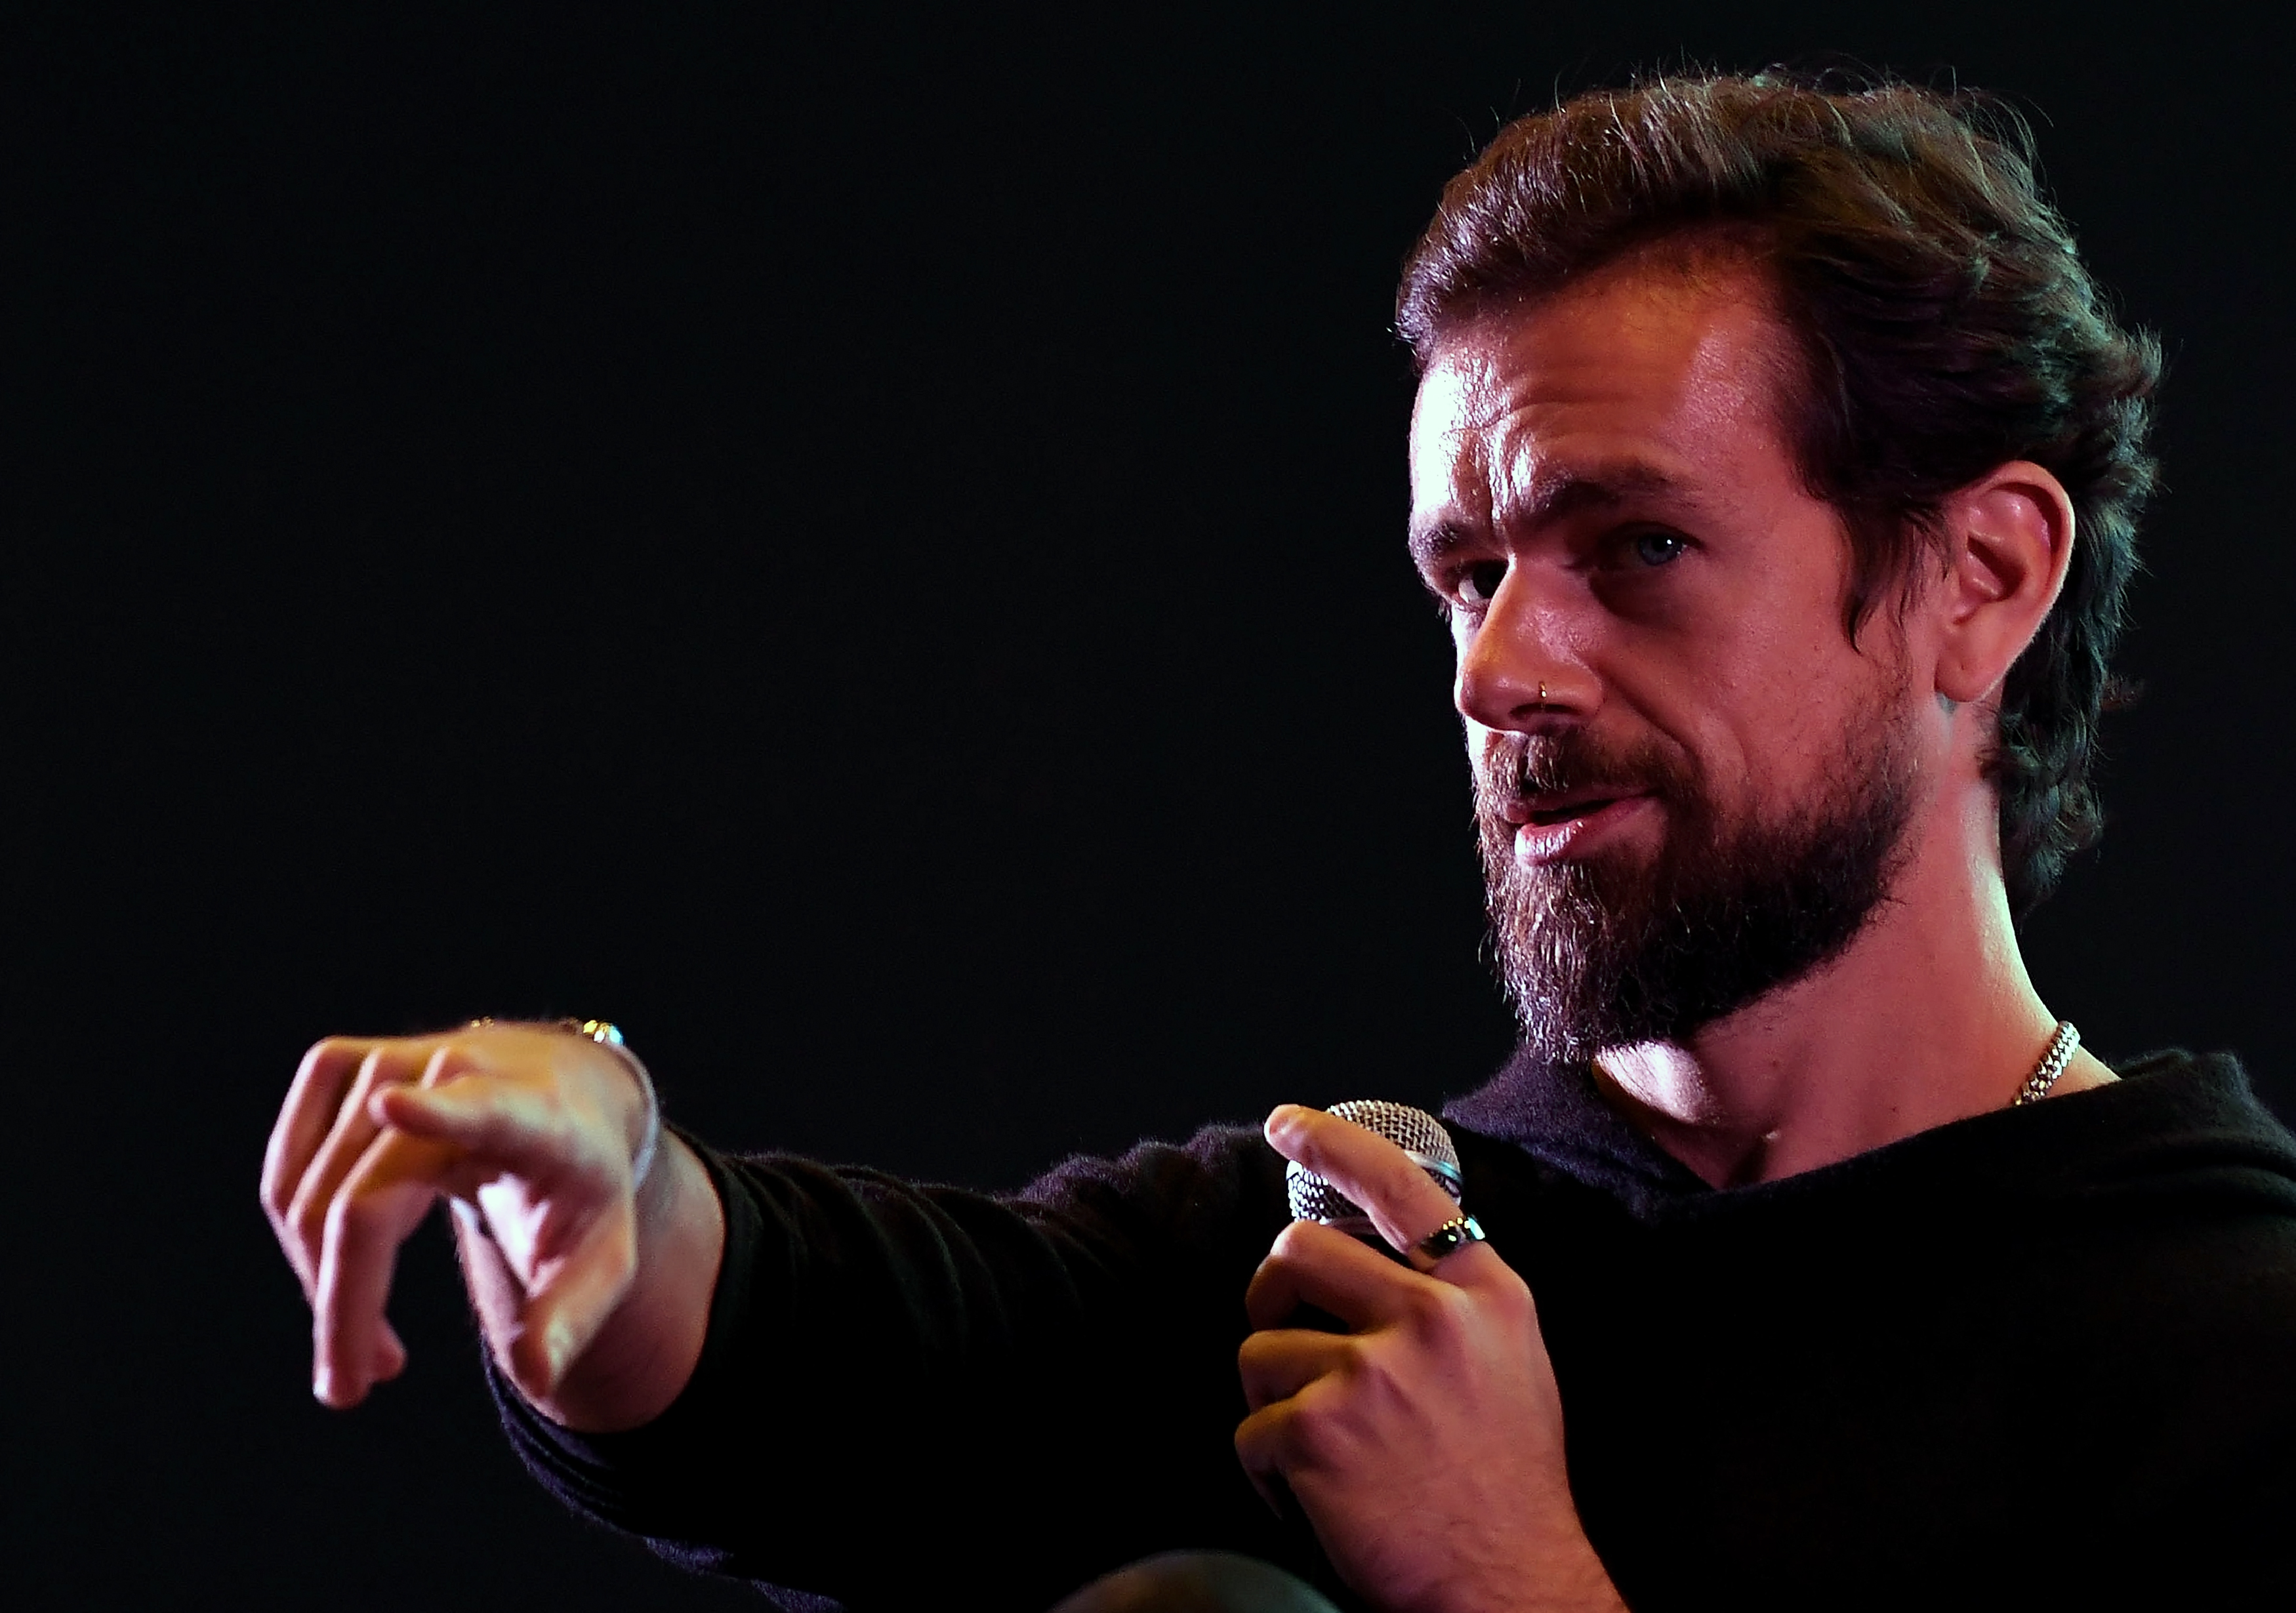 Jack Dorsey Frets Over Silicon Valley Censorship as He Defends Donald Trump Twitter Ban